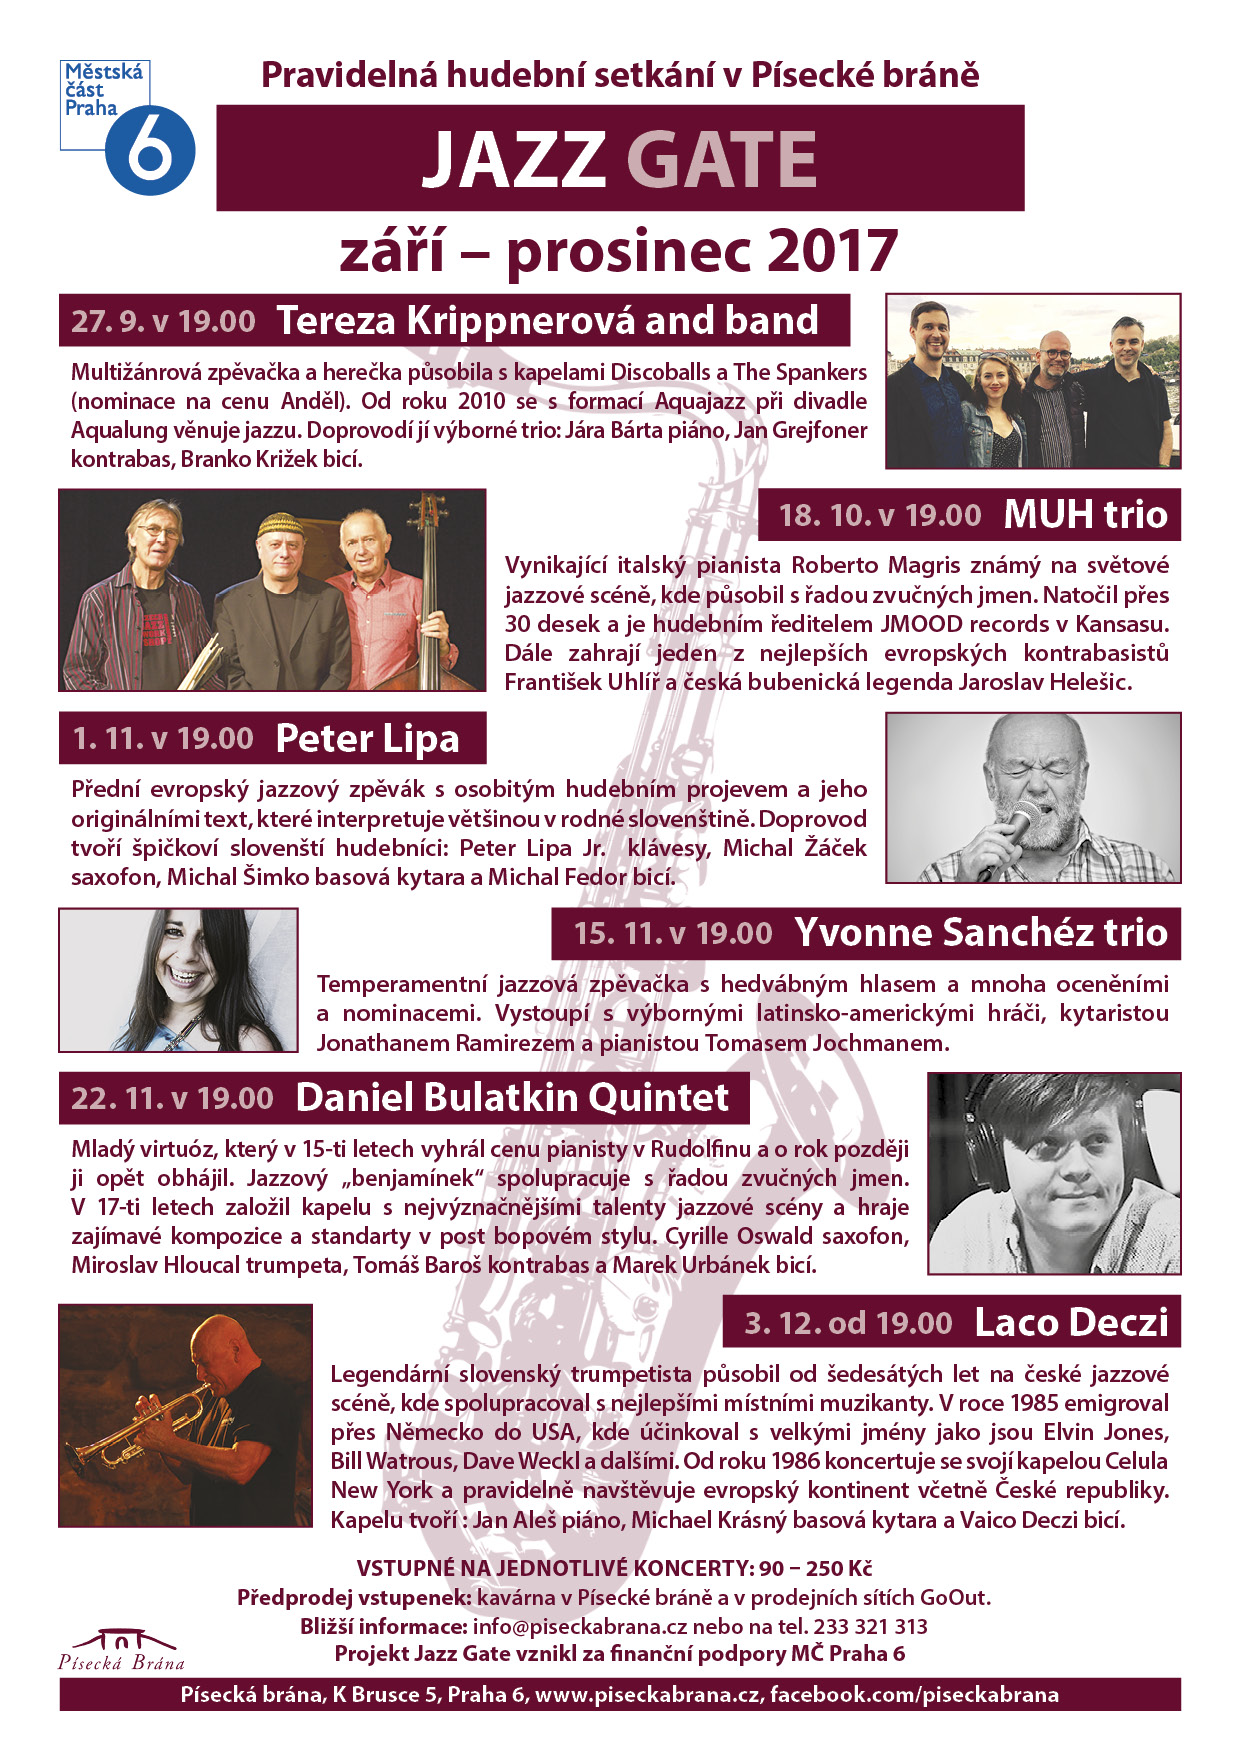 PROGRAM JAZZ GATE ZARI PROSINEC 2017